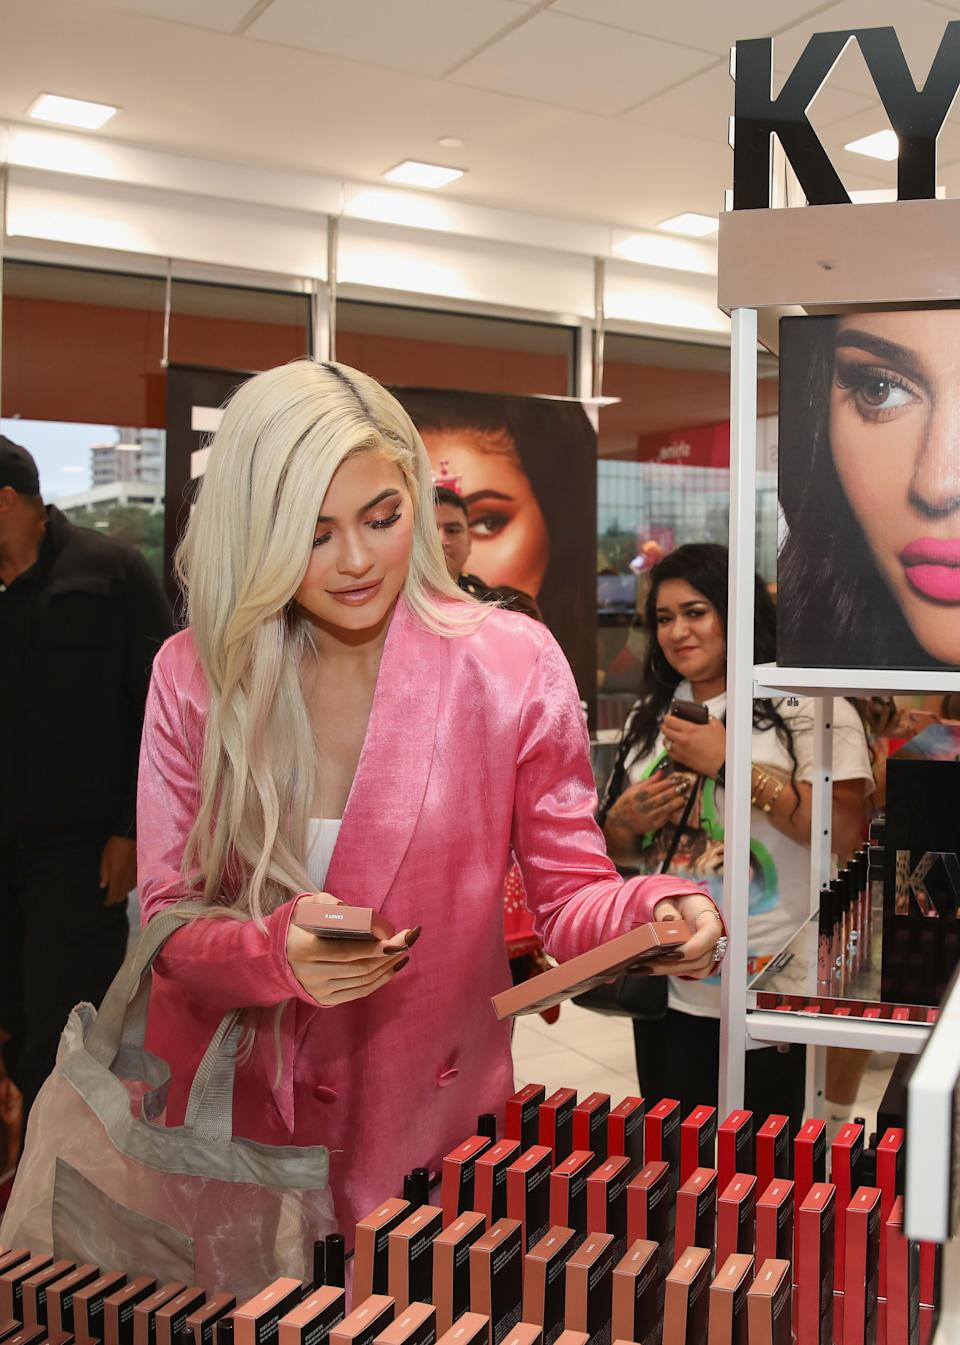 Kylie Jenner checks out her product at a beauty store. Photo: Getty